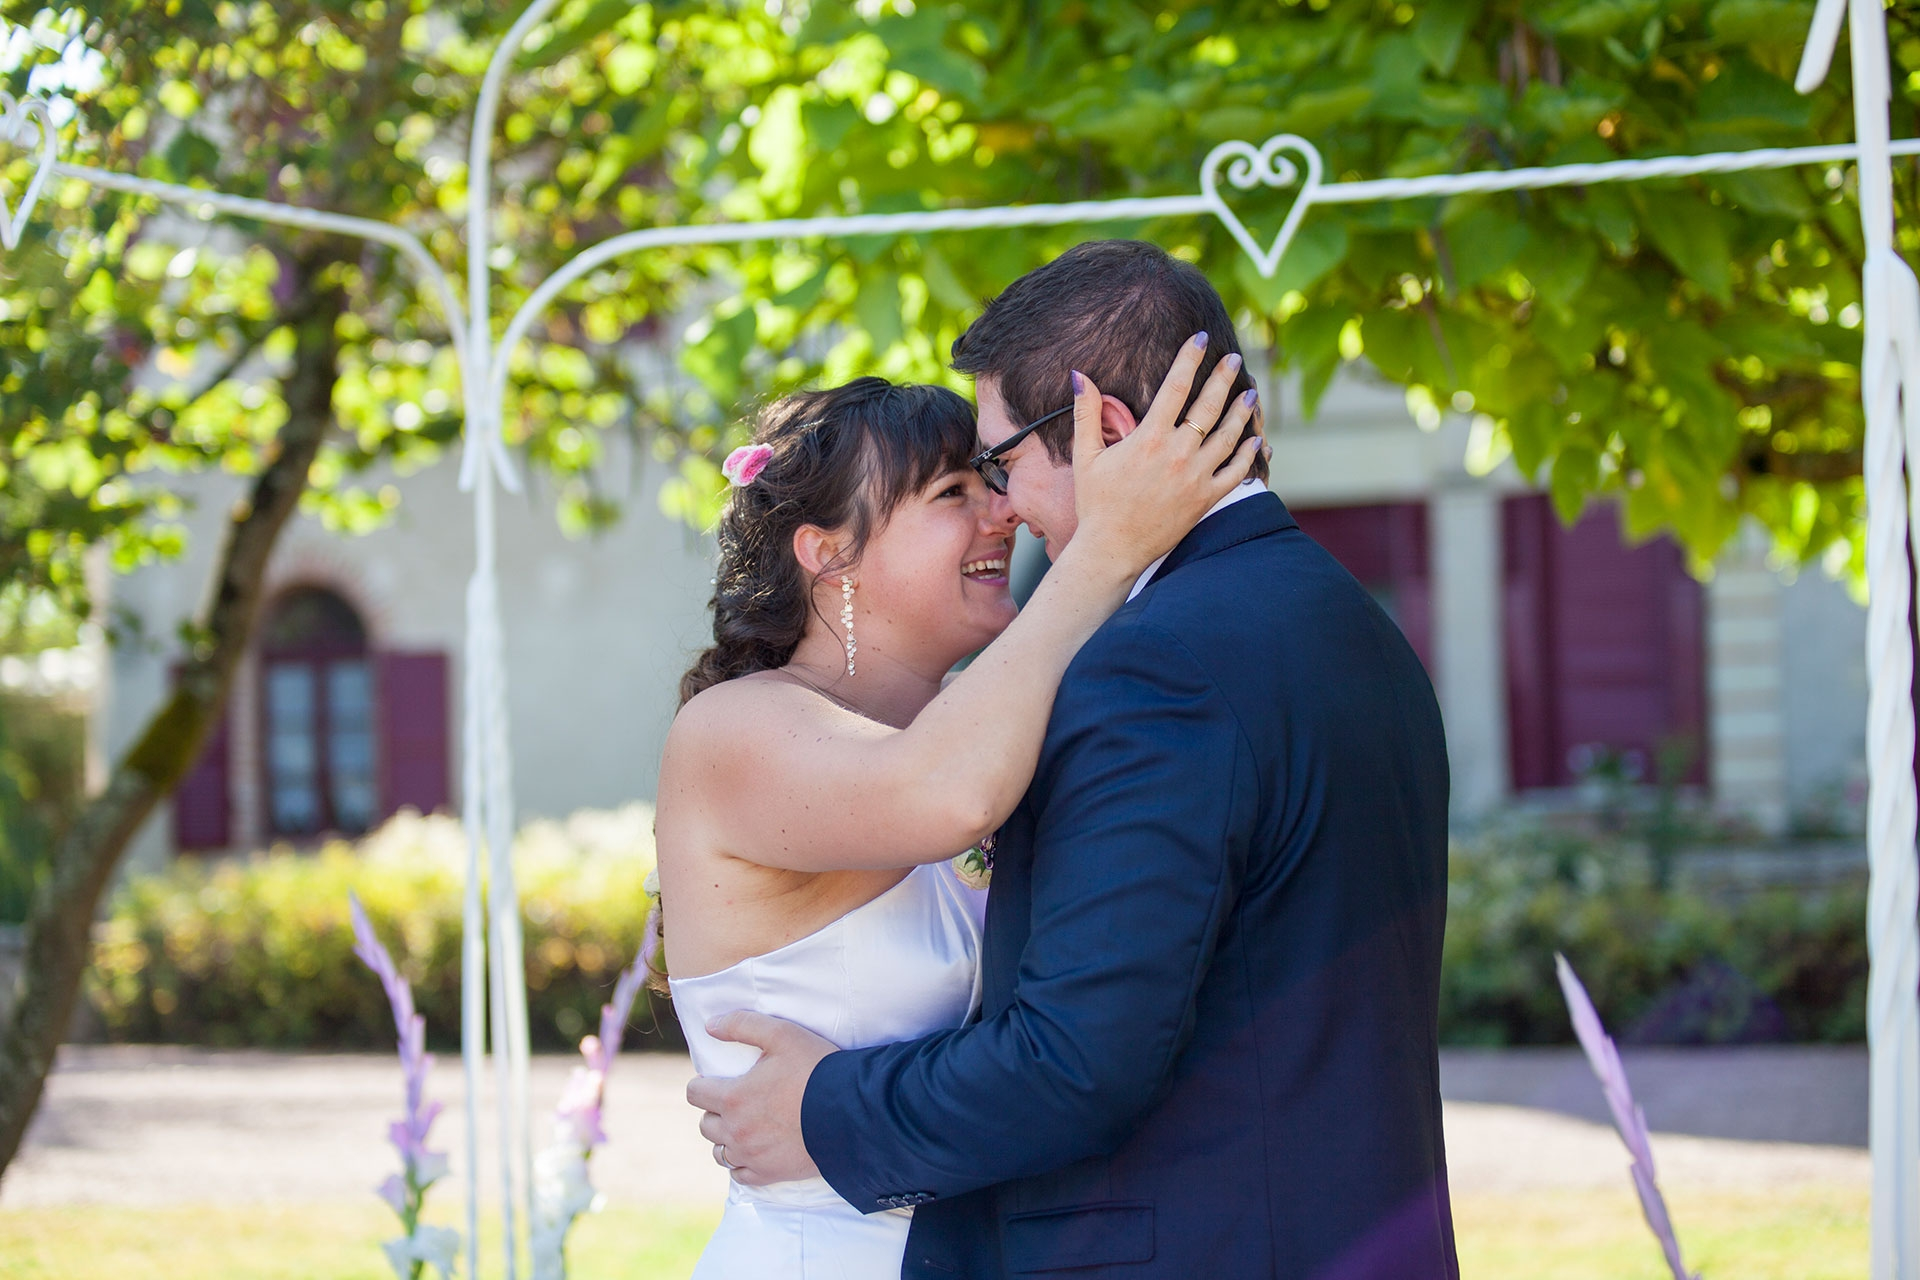 particuliers-evenements-mariages-oui-france&philippe-60